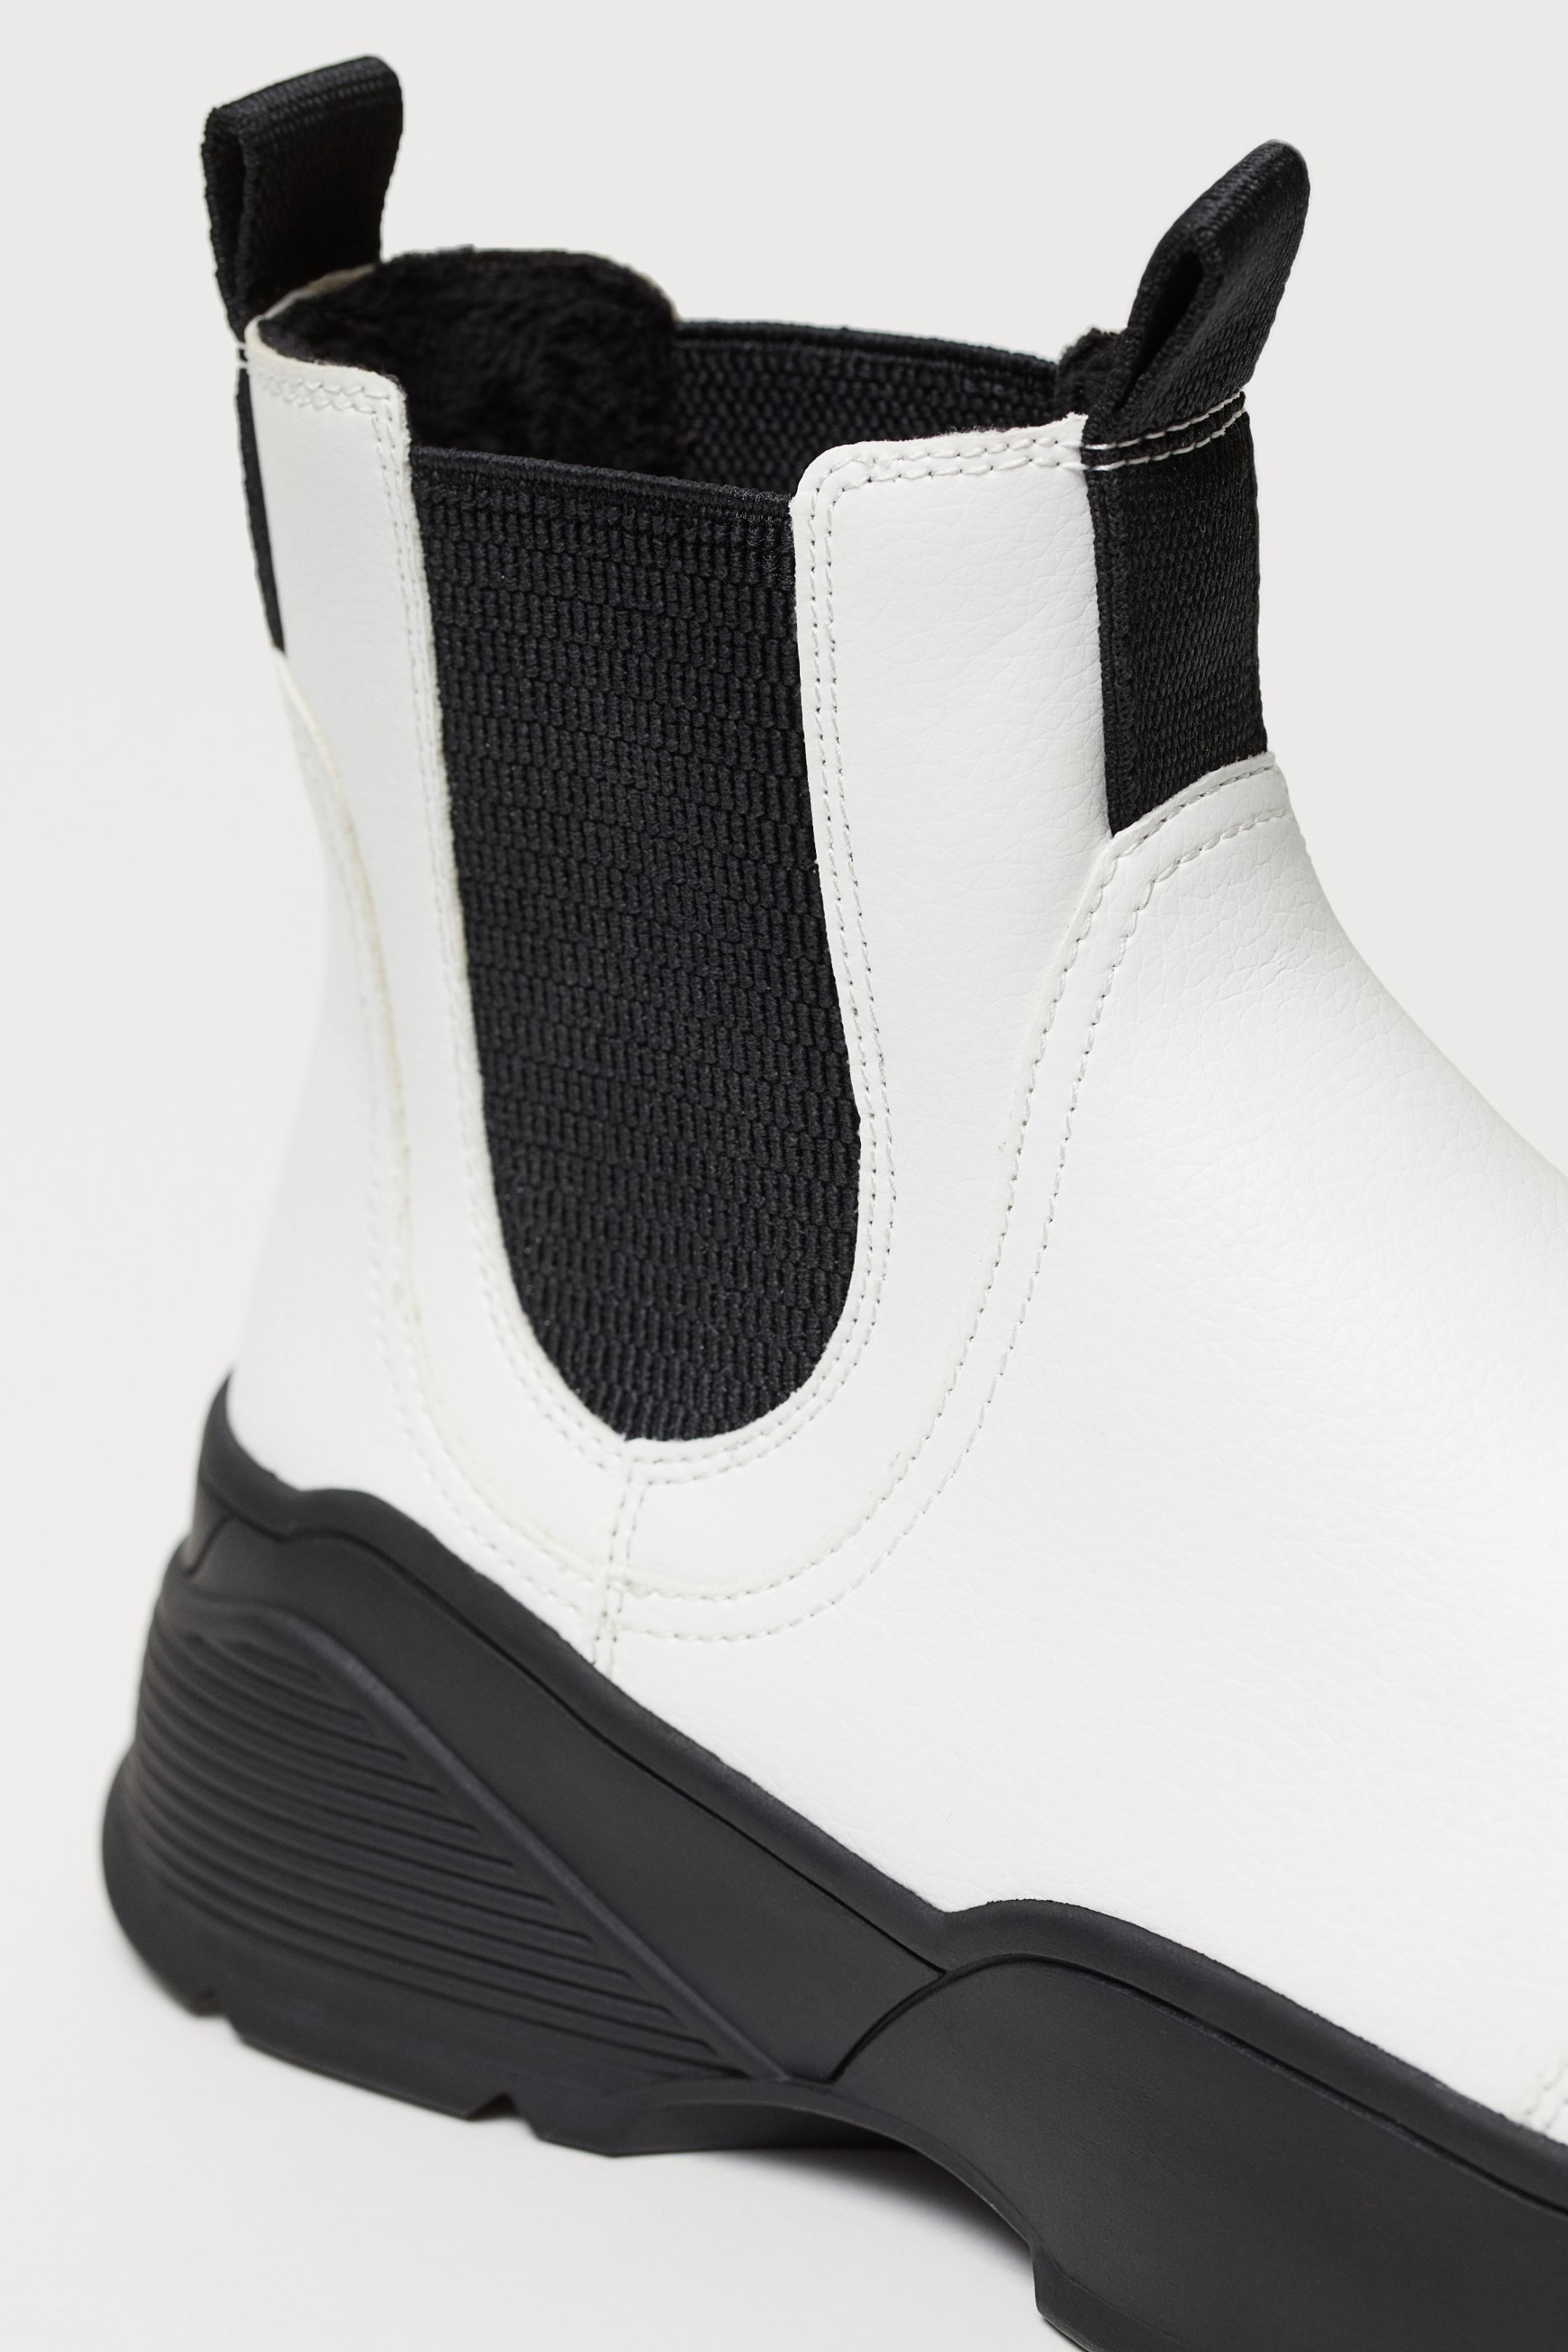 Chelsea boots in synthetic leather with side elastics and front and back belt loops. Lined and stuffed insole. Thick sports sole.